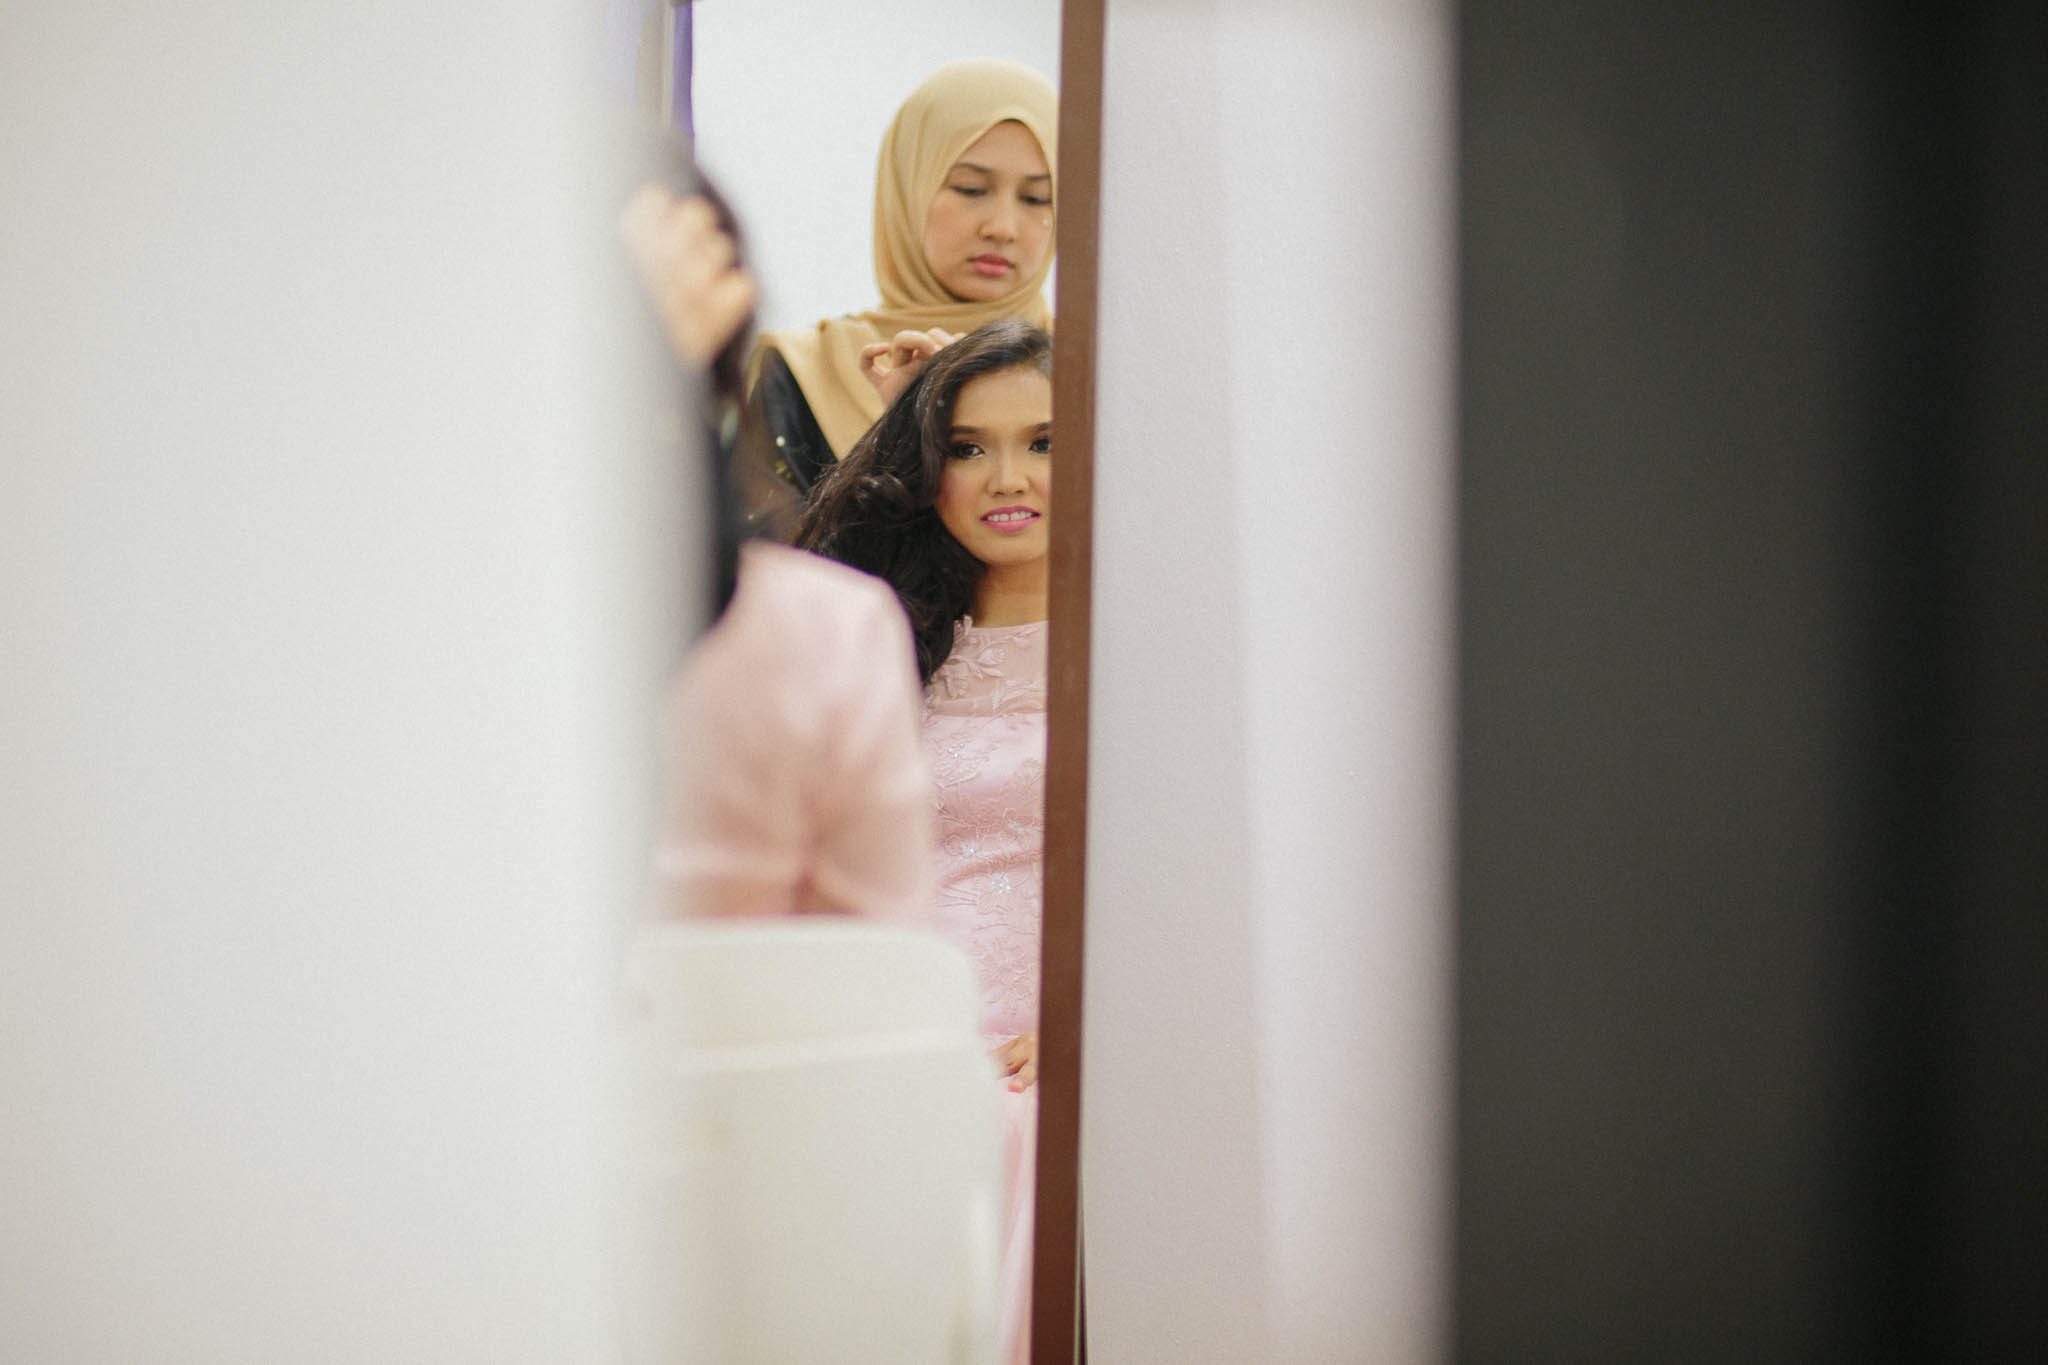 singapore-wedding-photographer-wedding-halimah-muhsin-028.jpg